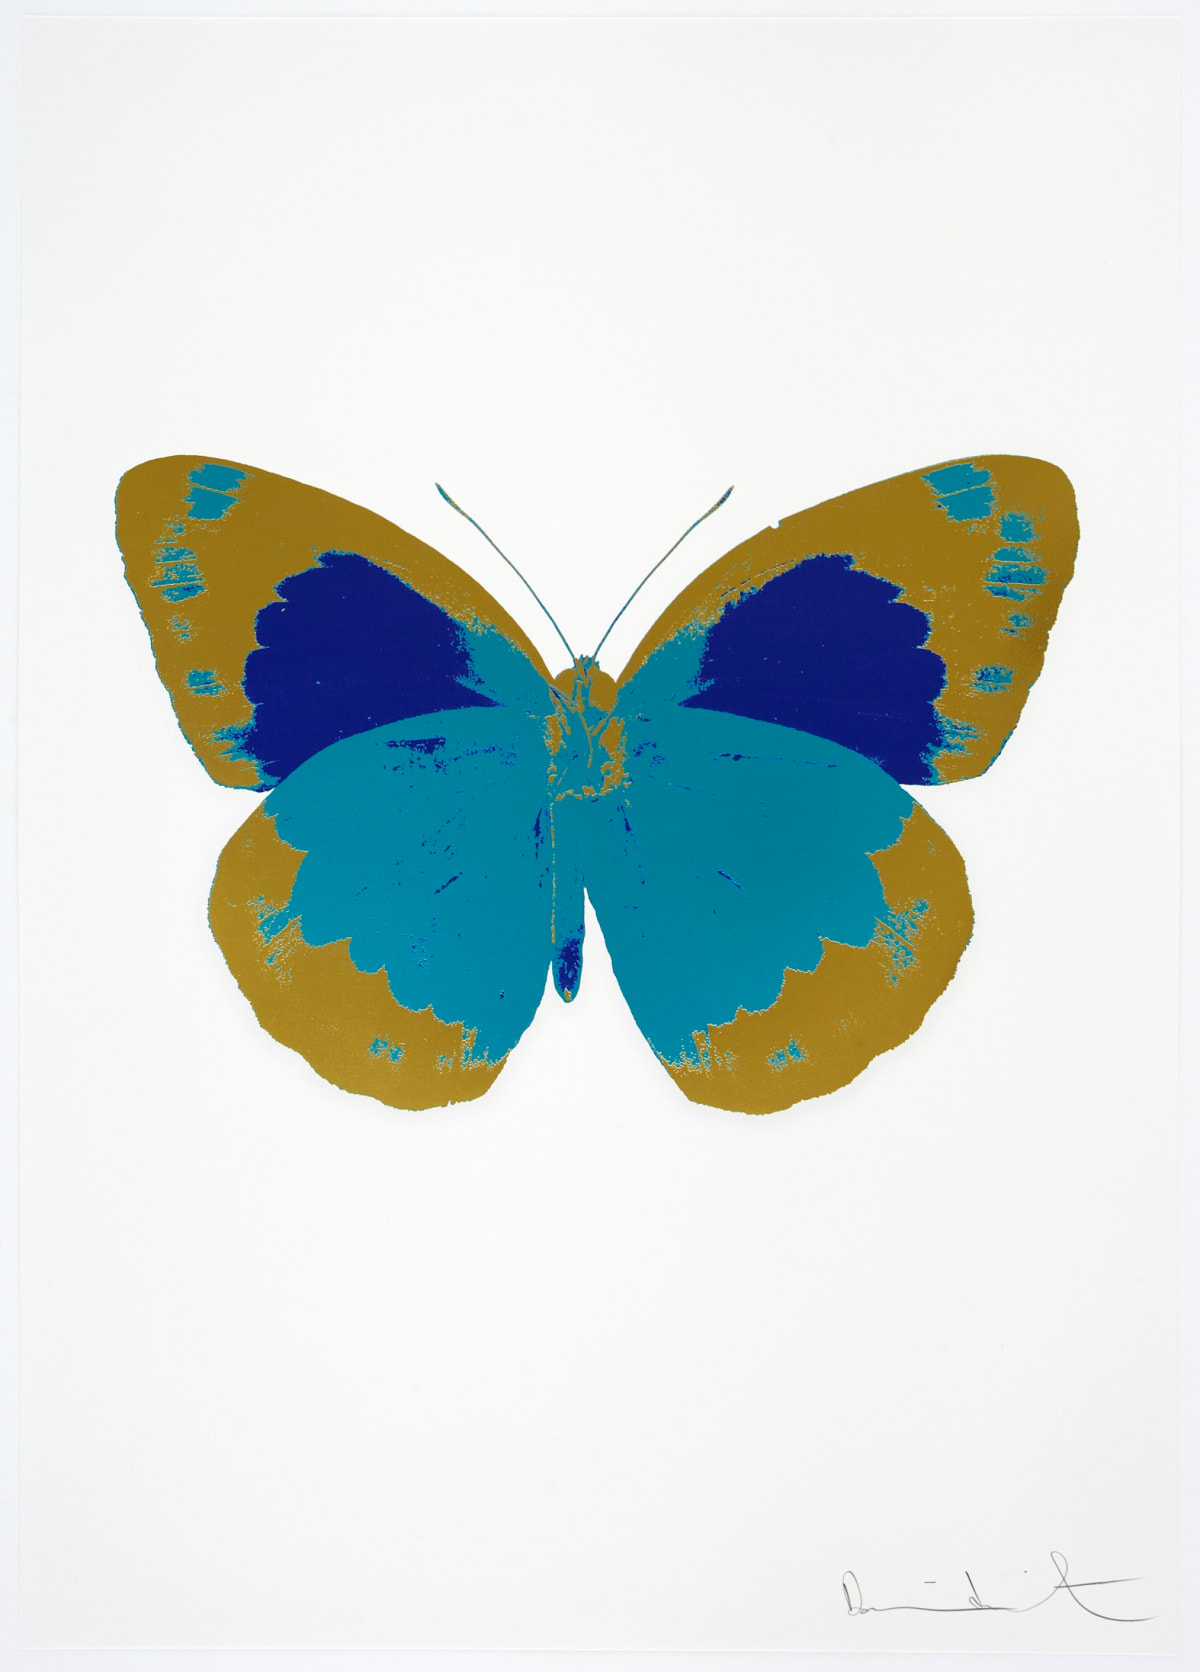 Damien Hirst The Souls II - Topaz/Oriental Gold/Westminster Blue, 2010 3 colour foil block on 300gsm Arches 88 archival paper. Signed and numbered. Published by Paul Stolper and Other Criteria 72 x 51cm OC7882 / 658-65 Edition of 15